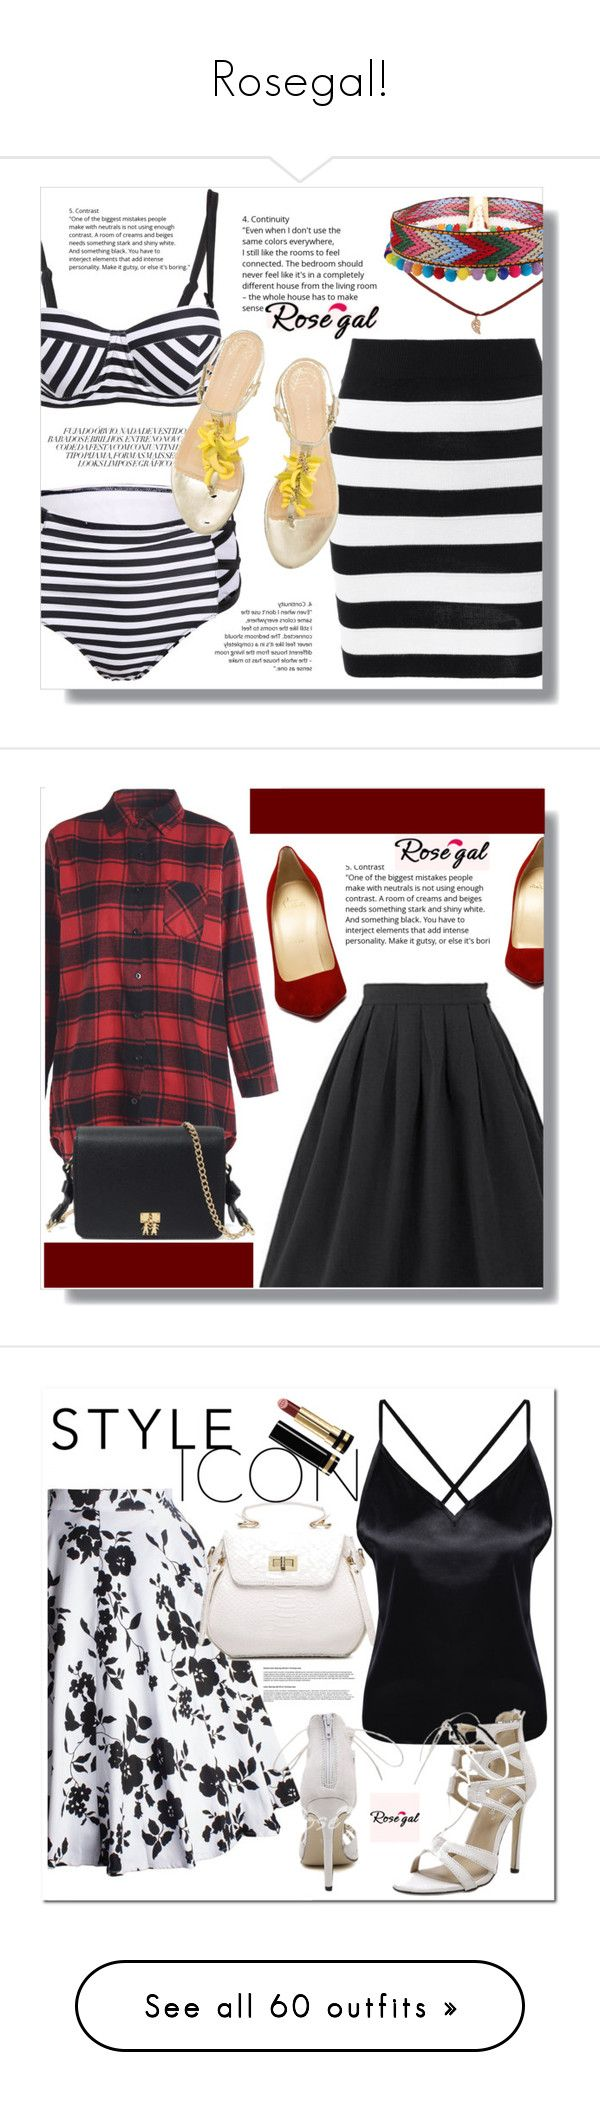 """""""Rosegal!"""" by clumsy-dreamer ❤ liked on Polyvore featuring Spring, polyvoreeditorial, rosegal, Gucci, vintage, Chanel, NARS Cosmetics, Maybelline, Giorgio Armani and New Growth Designs"""